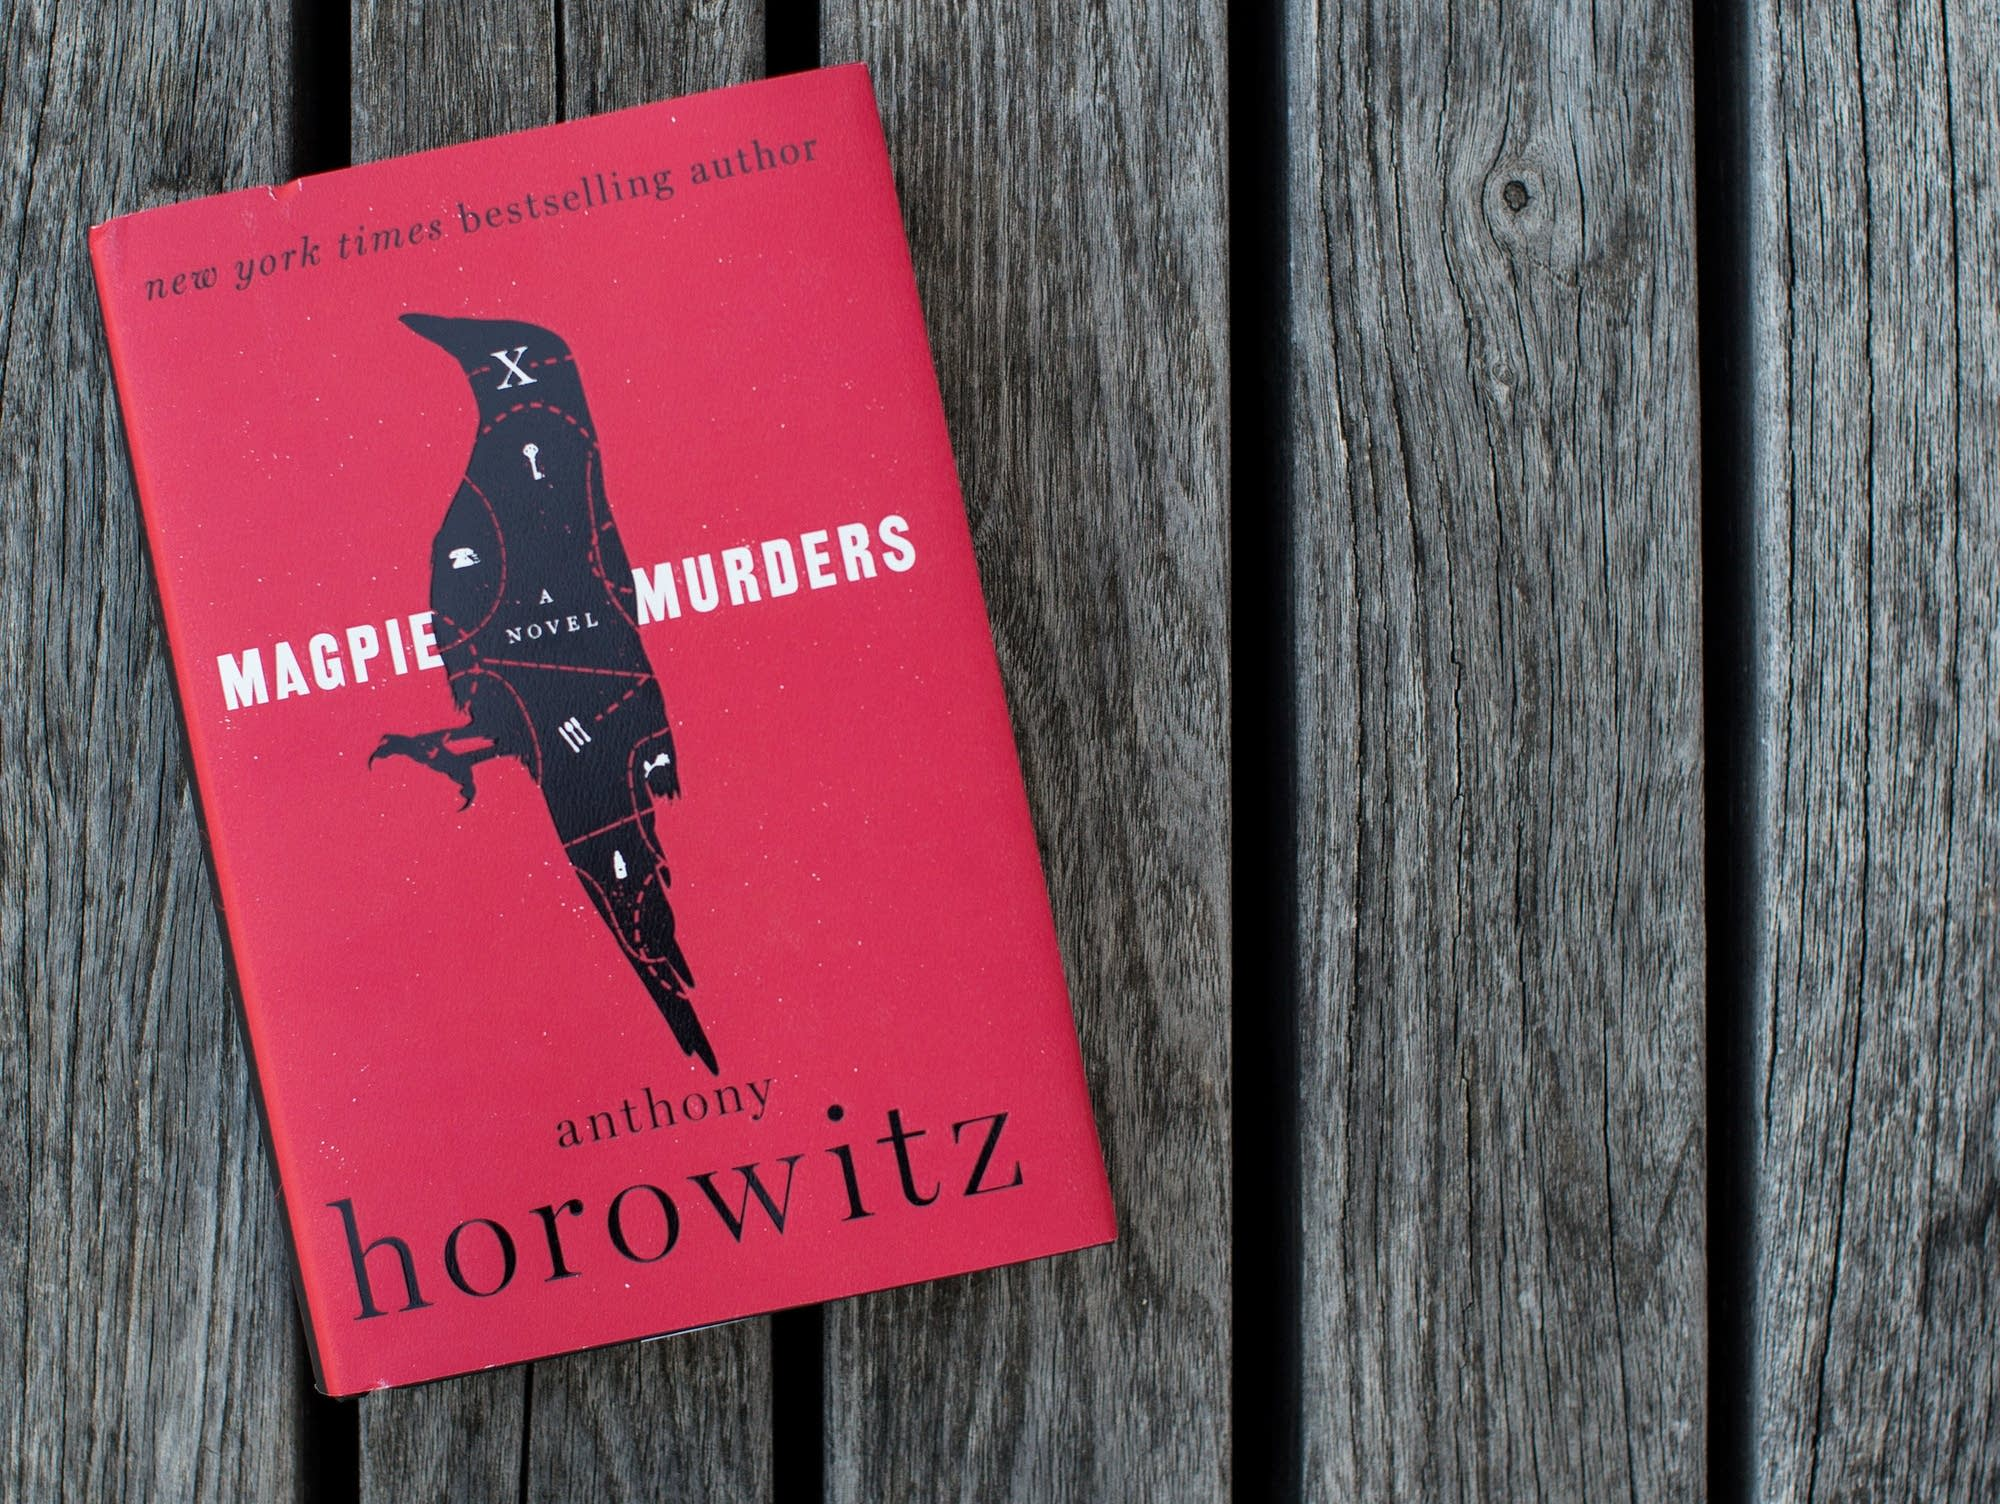 'Magpie Murders' by Anthony Horowitz